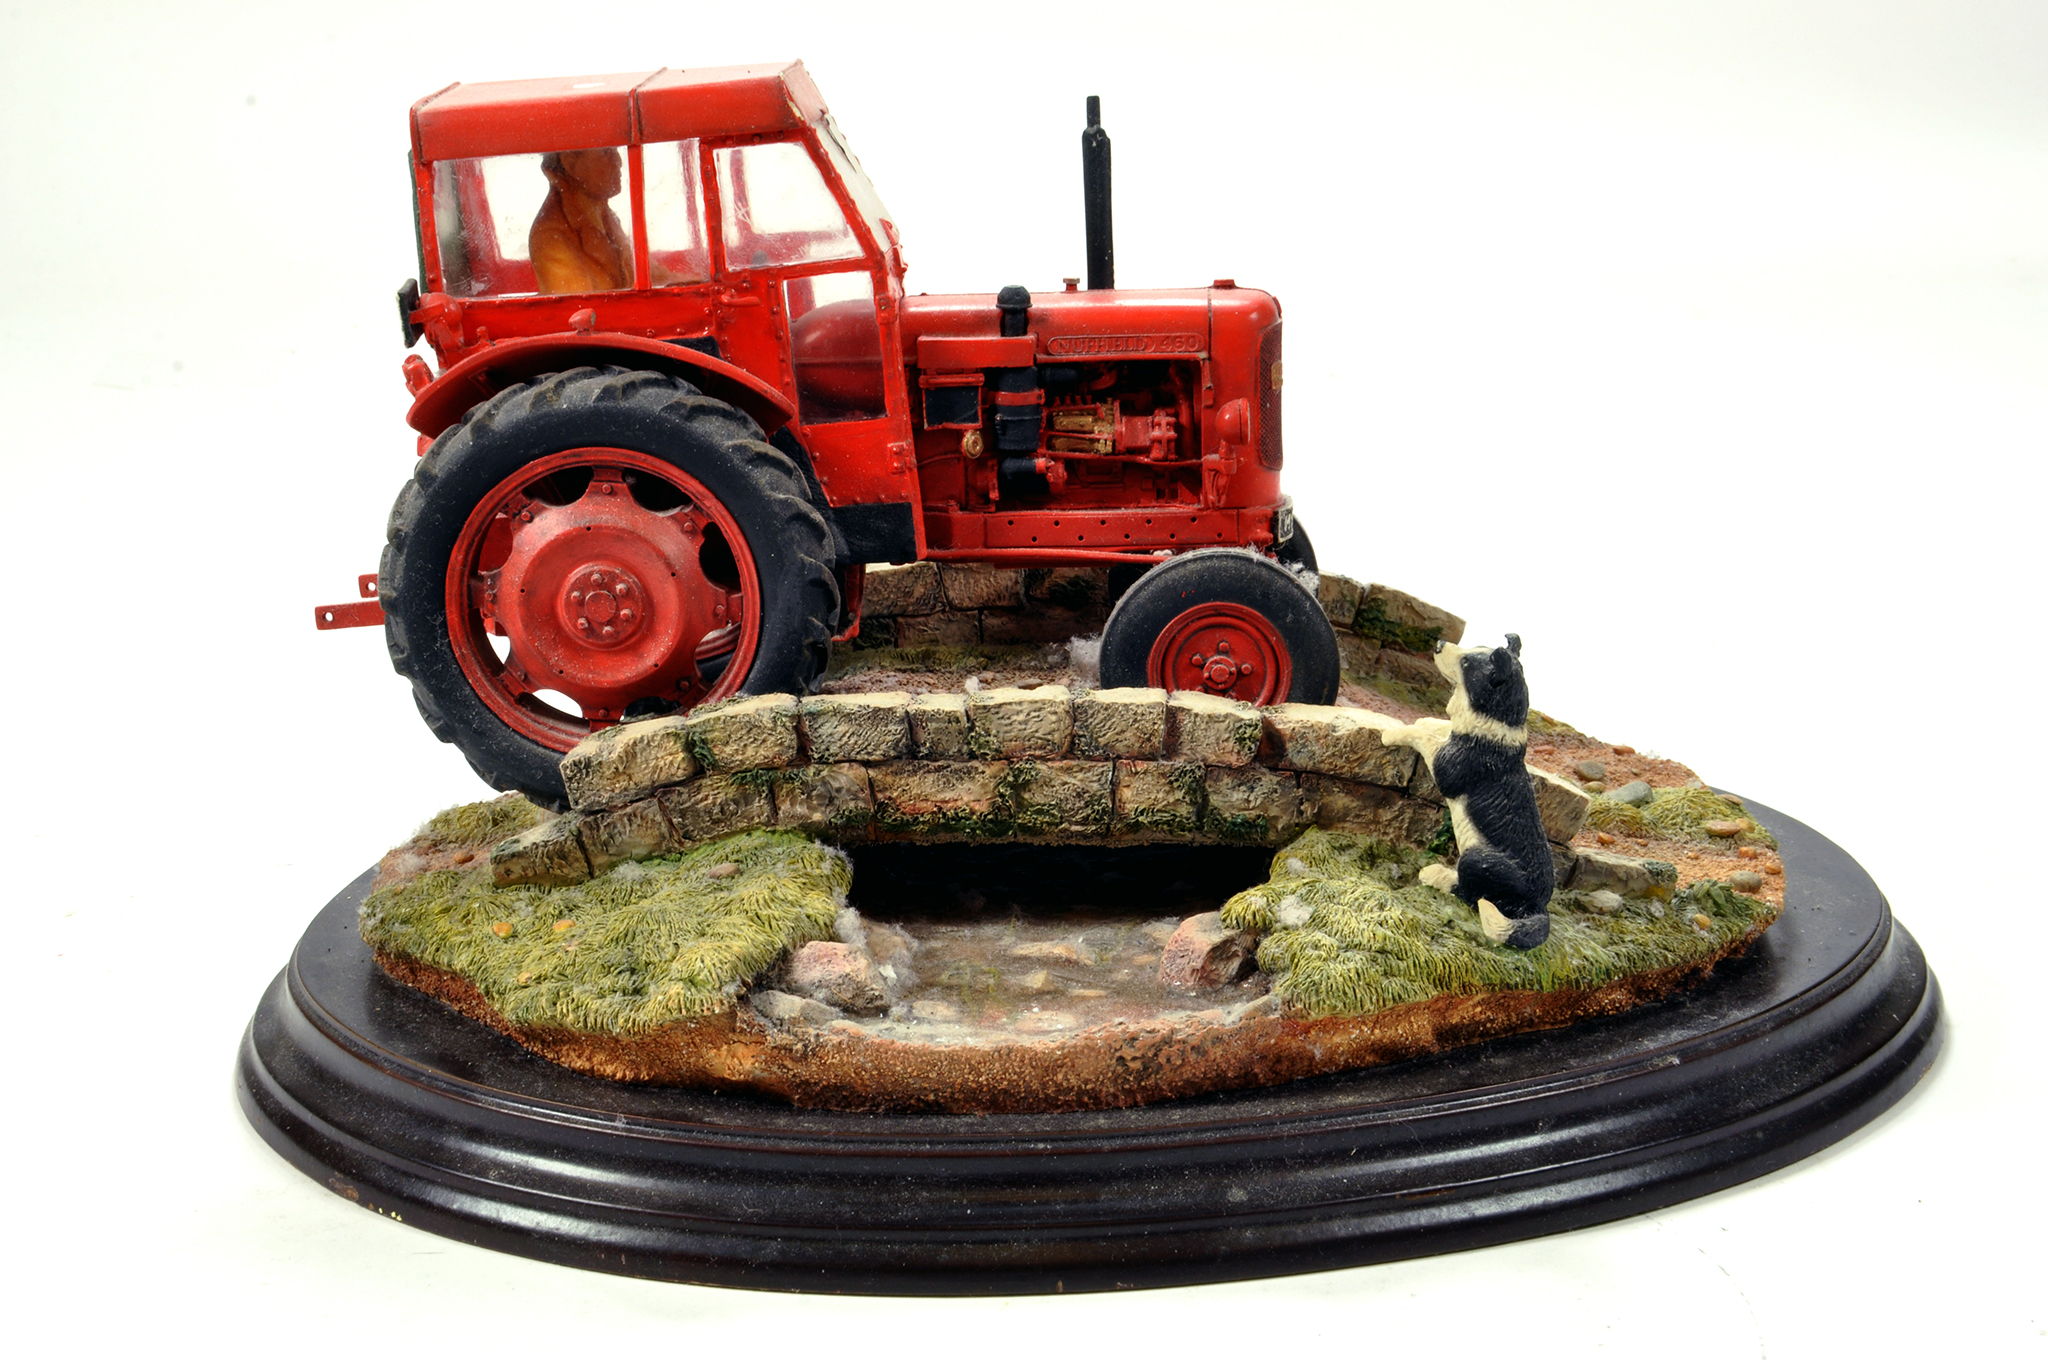 Lot 828 - A static presentation piece comprising Welcome Home, a Country Artists model featuring Nuffield